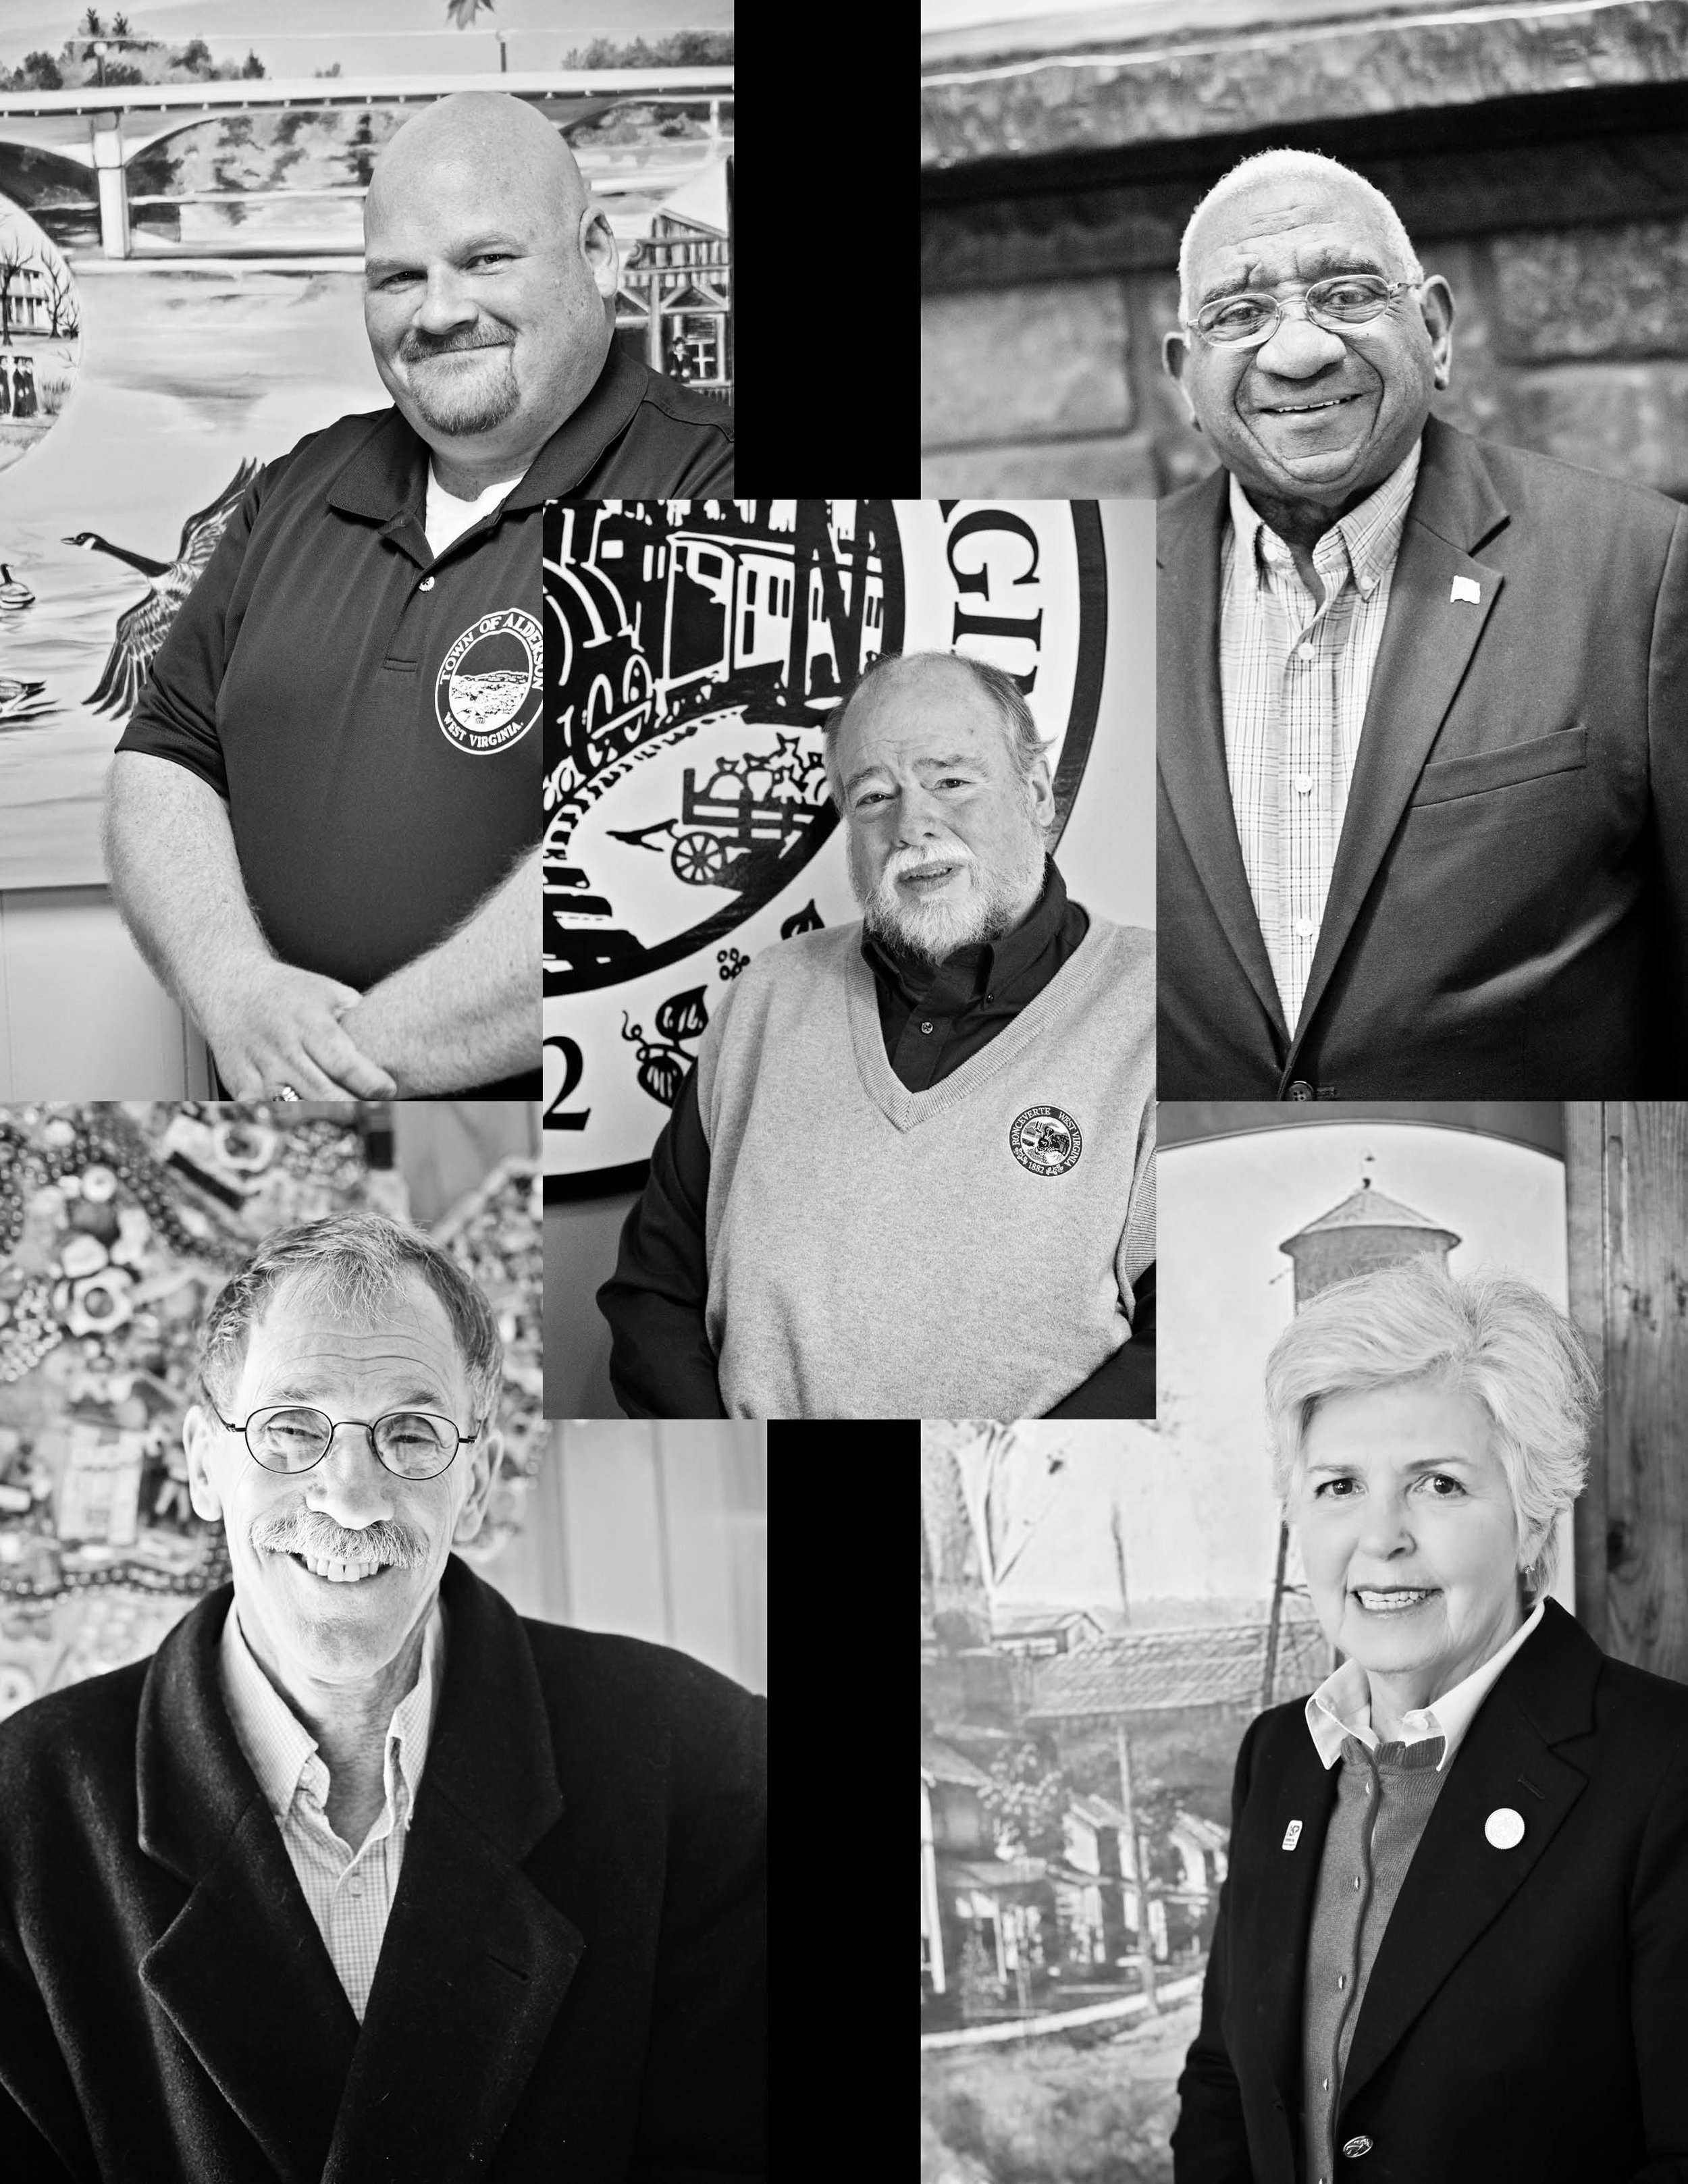 5 - These five mayors throughout Greenbrier and Nicholas Counties worked tirelessly throughout the tragedy and for many weeks after. Their leadership in their own communities have helped sustain and rebuild neighborhoods and downtowns. Whether working directly with the many recovery organizations or fast-tracking municipal business to better respond to their city's immediate needs, these mayors have shown great courage in the face of the devastation and destruction the flood caused.